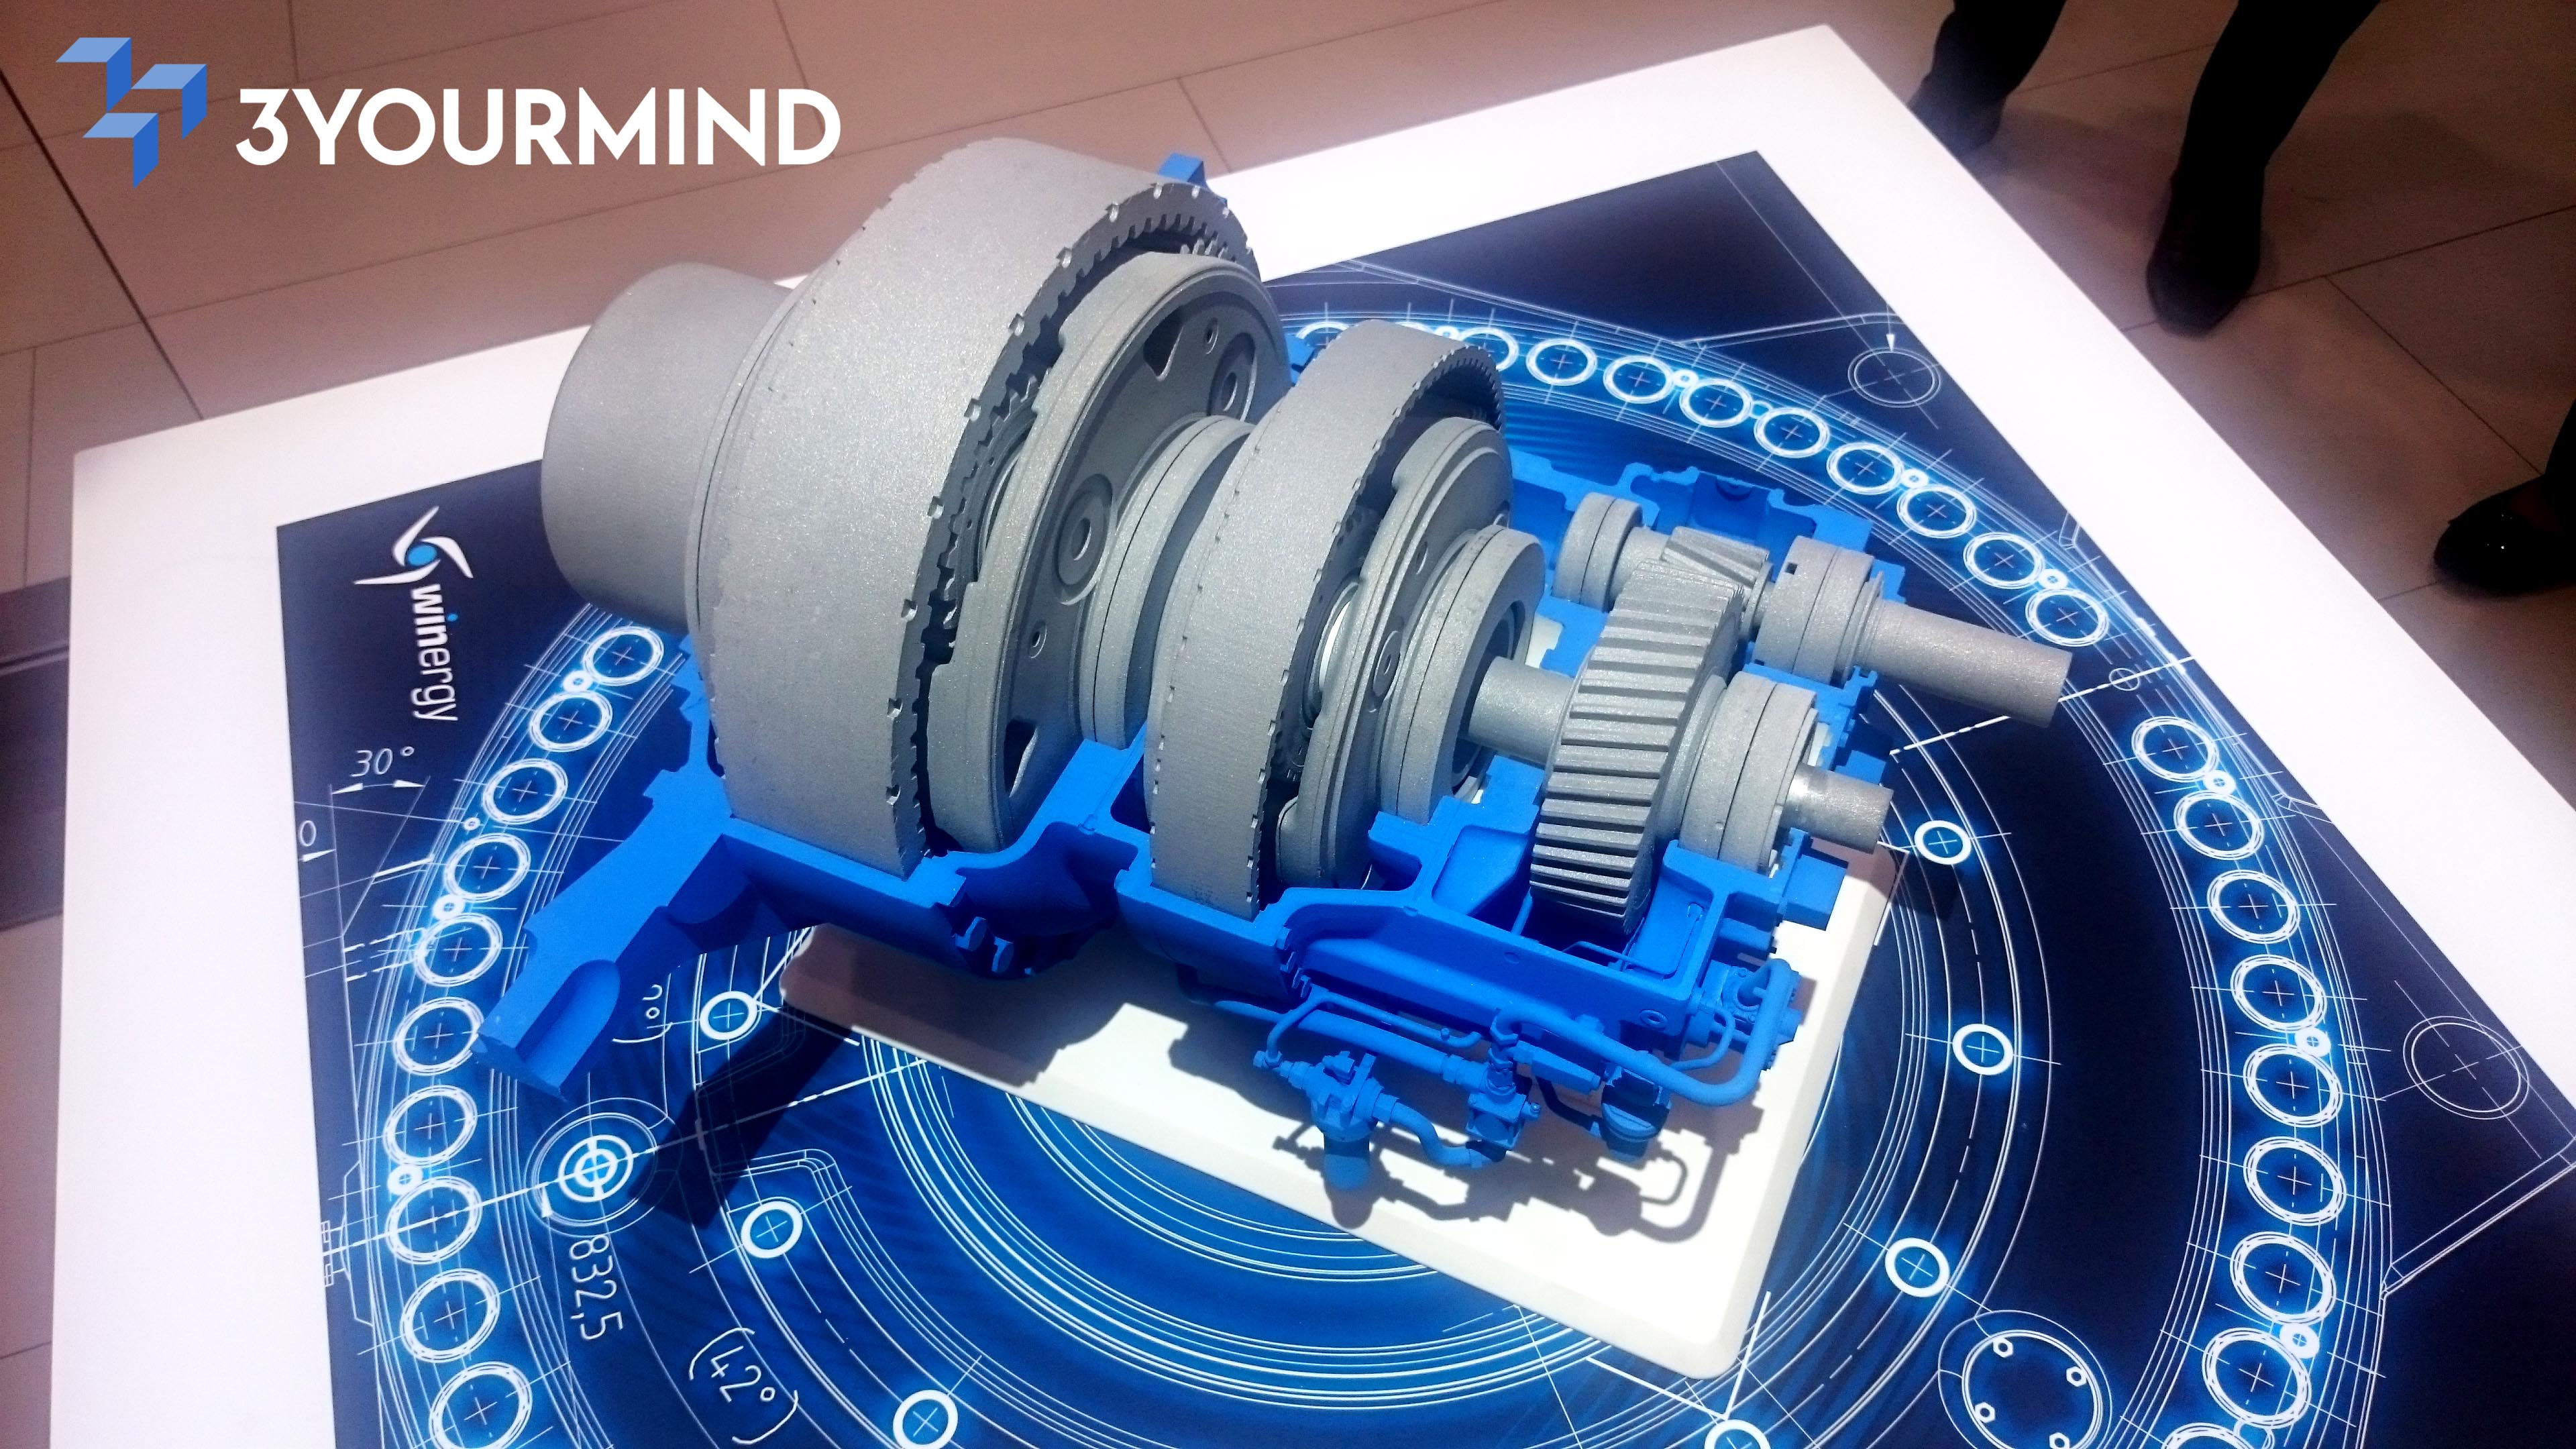 Manufacturing Impact: Winergy's Functional, 3D Printed Gear Drive Model